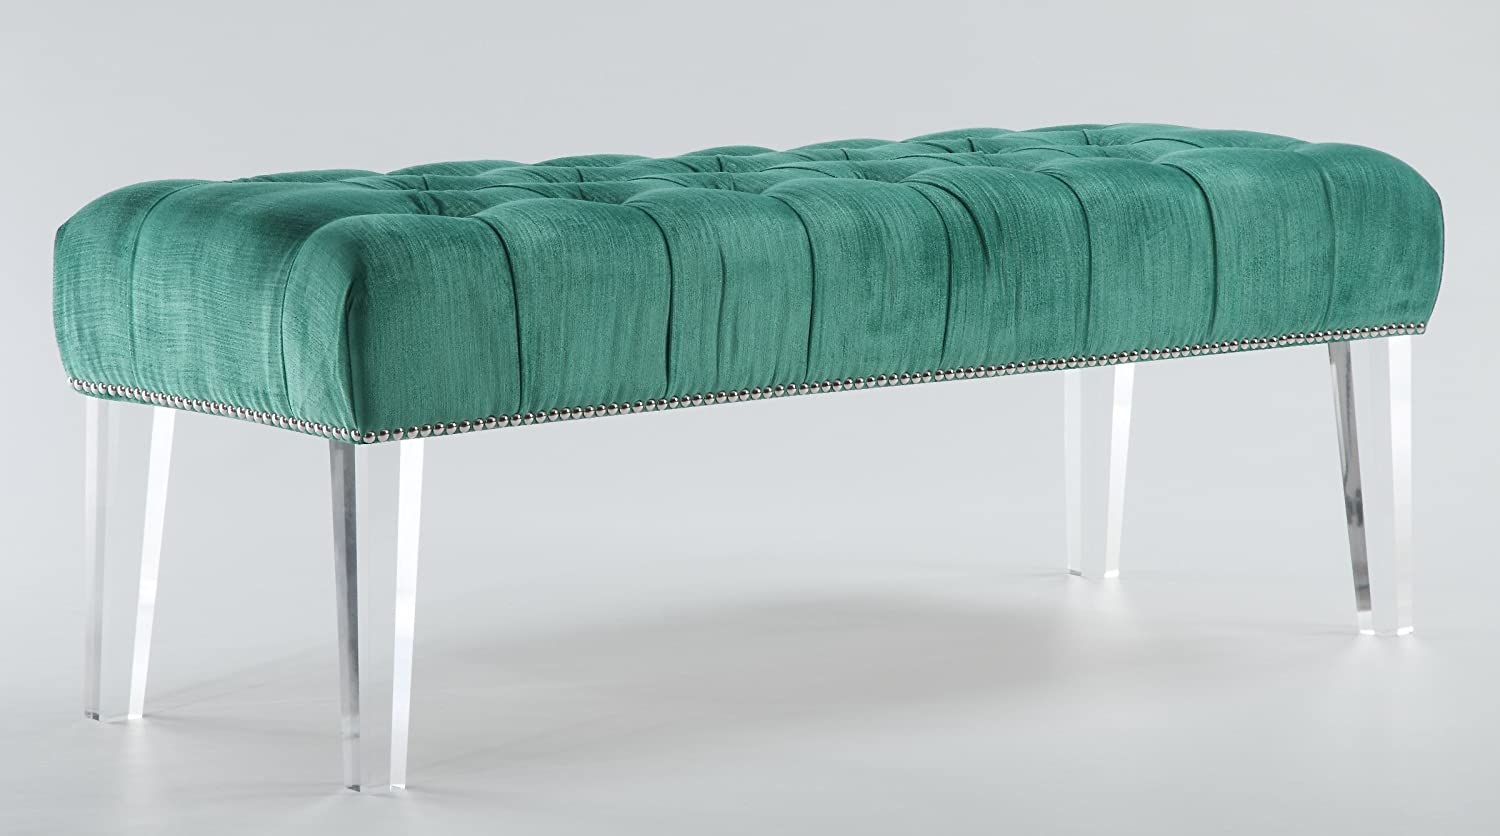 acrylic bedroom furniture. amazoncom tov furniture the stella collection modern velvet upholstered wood accent bench with lucite legs gray kitchen u0026 dining acrylic bedroom r